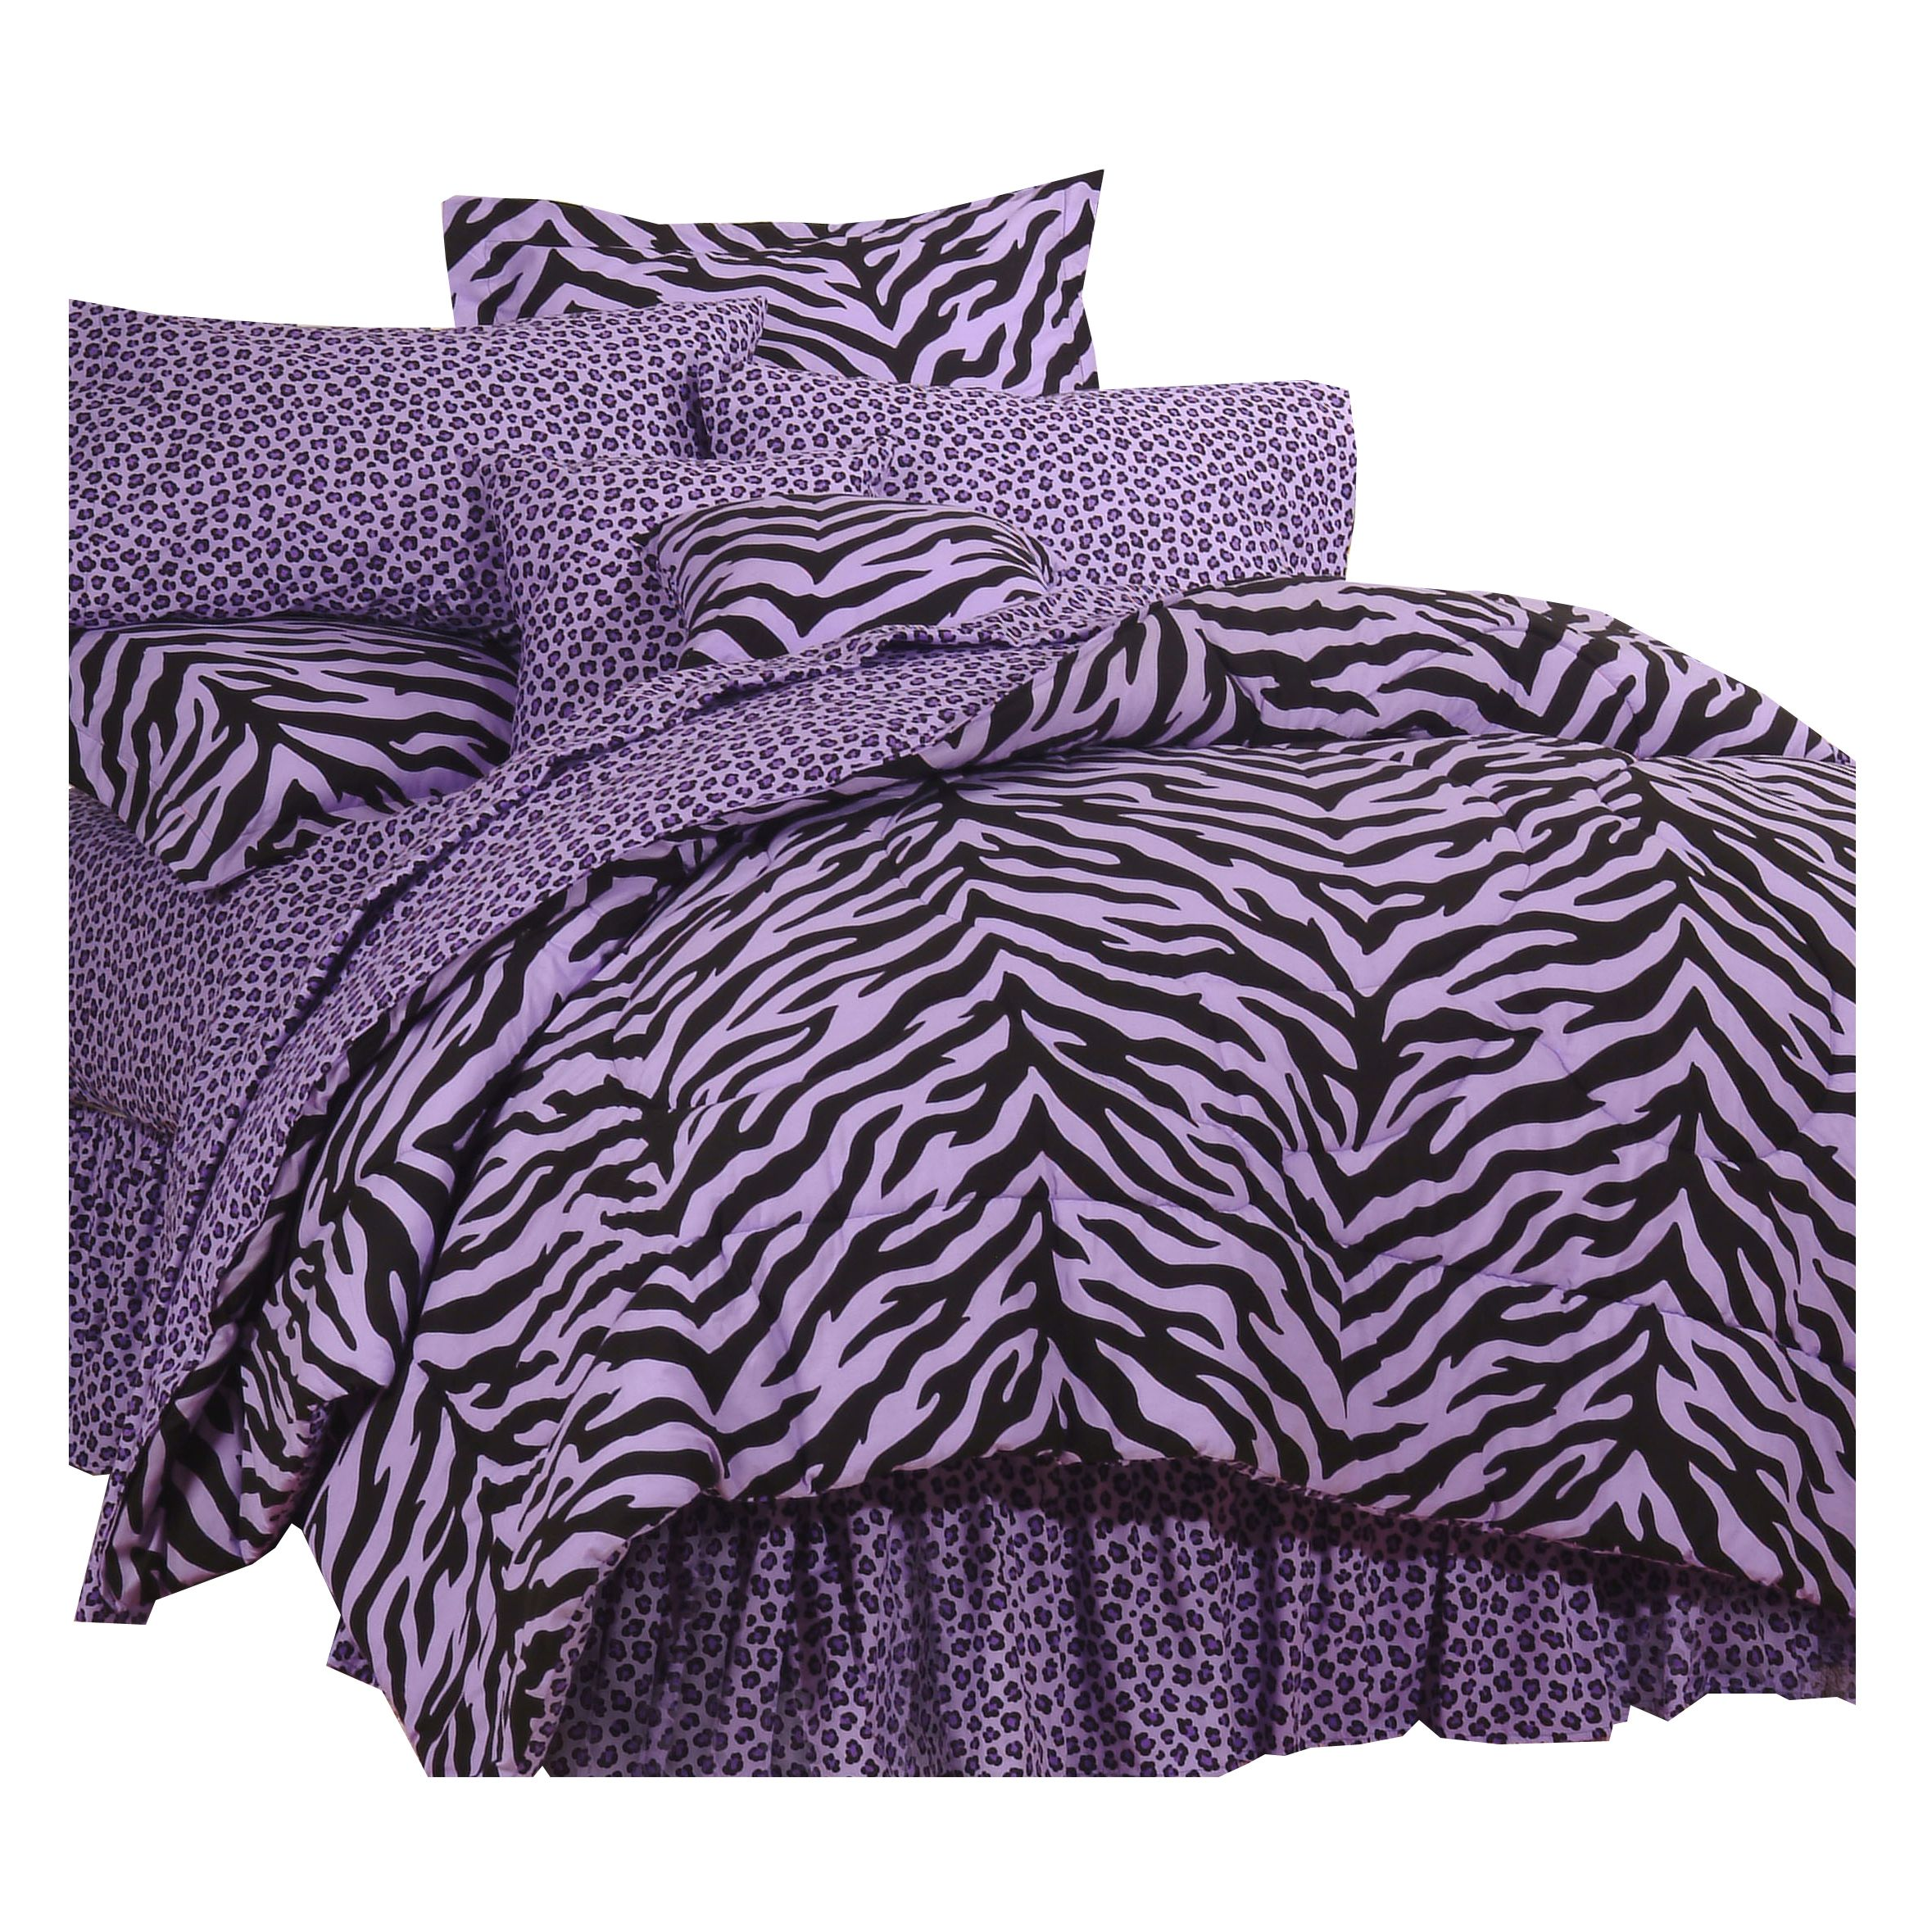 cool Great Twin Xl Bedding Sets For Dorms 93 For Your Small Home